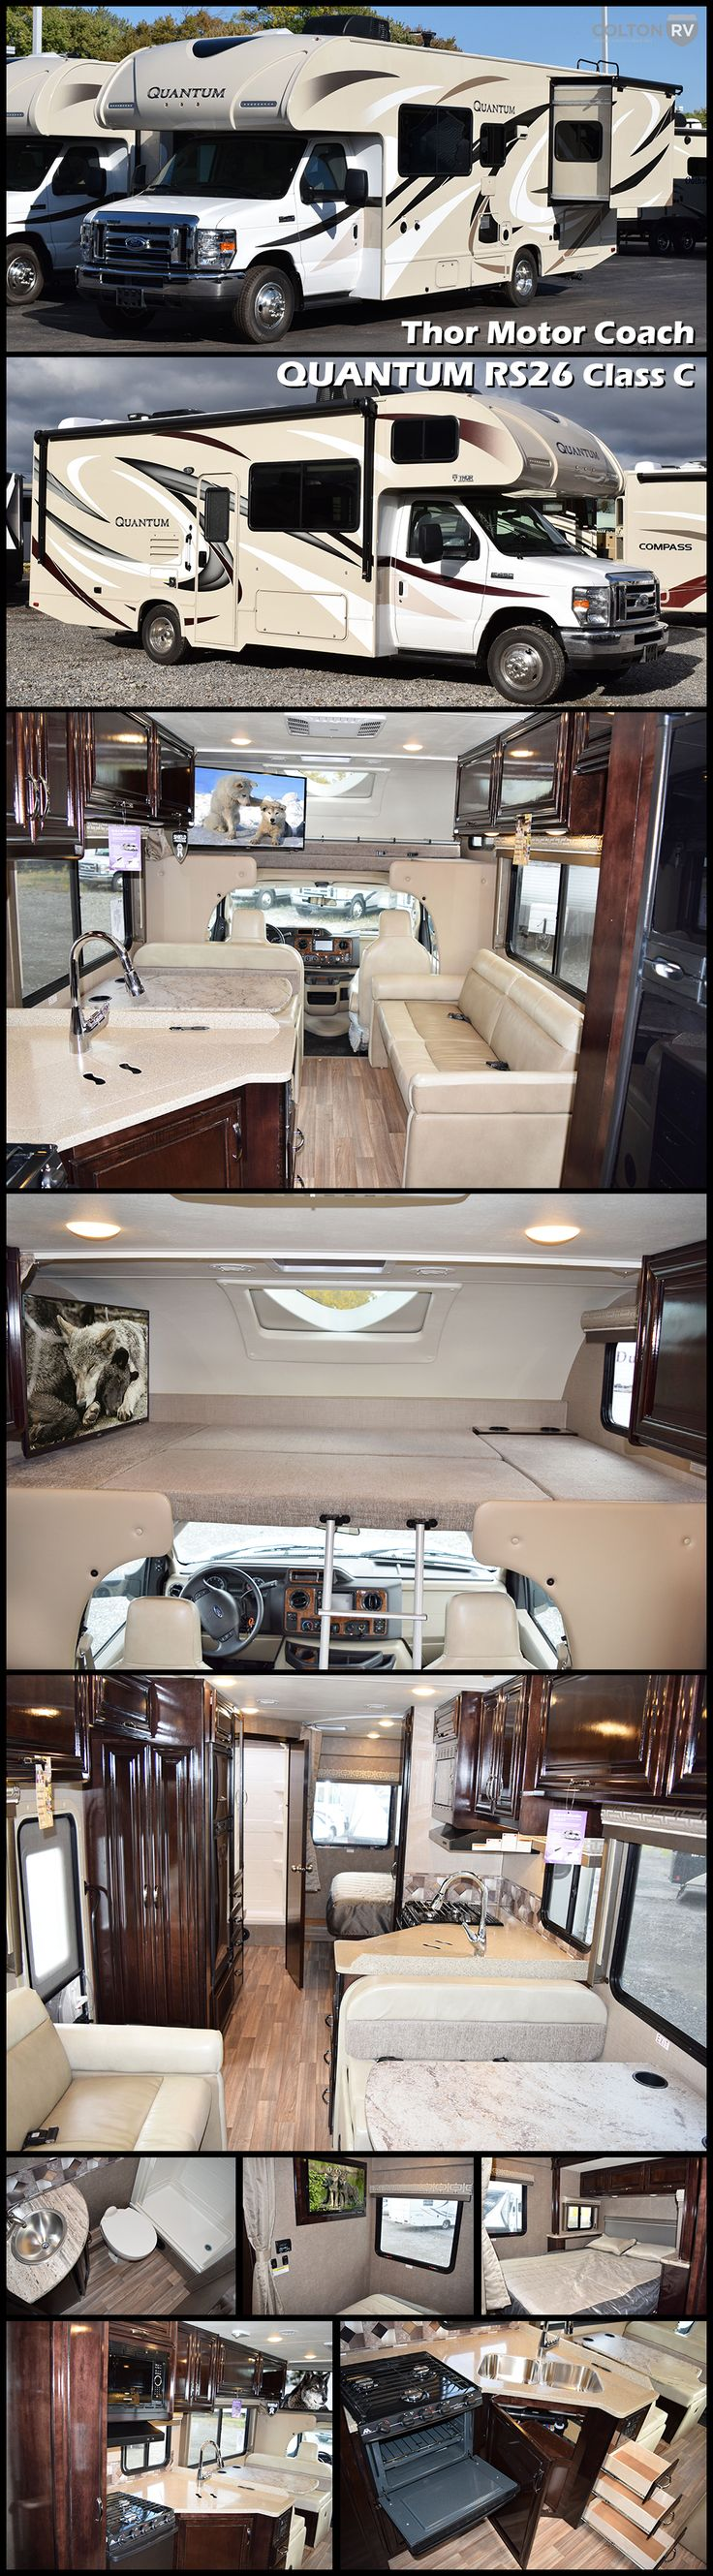 """2017 QUANTUM RS26 by THOR MOTOR COACH. This Class C Motorhome features a cab-over bunk which will be a favorite of the kids to sleep up top with 54"""" x 87"""" of sleeping space. They will love sky-gazing out the built-in skylight above. There is also a 40"""" LED TV on a swivel base for perfect viewing from anywhere in the coach."""